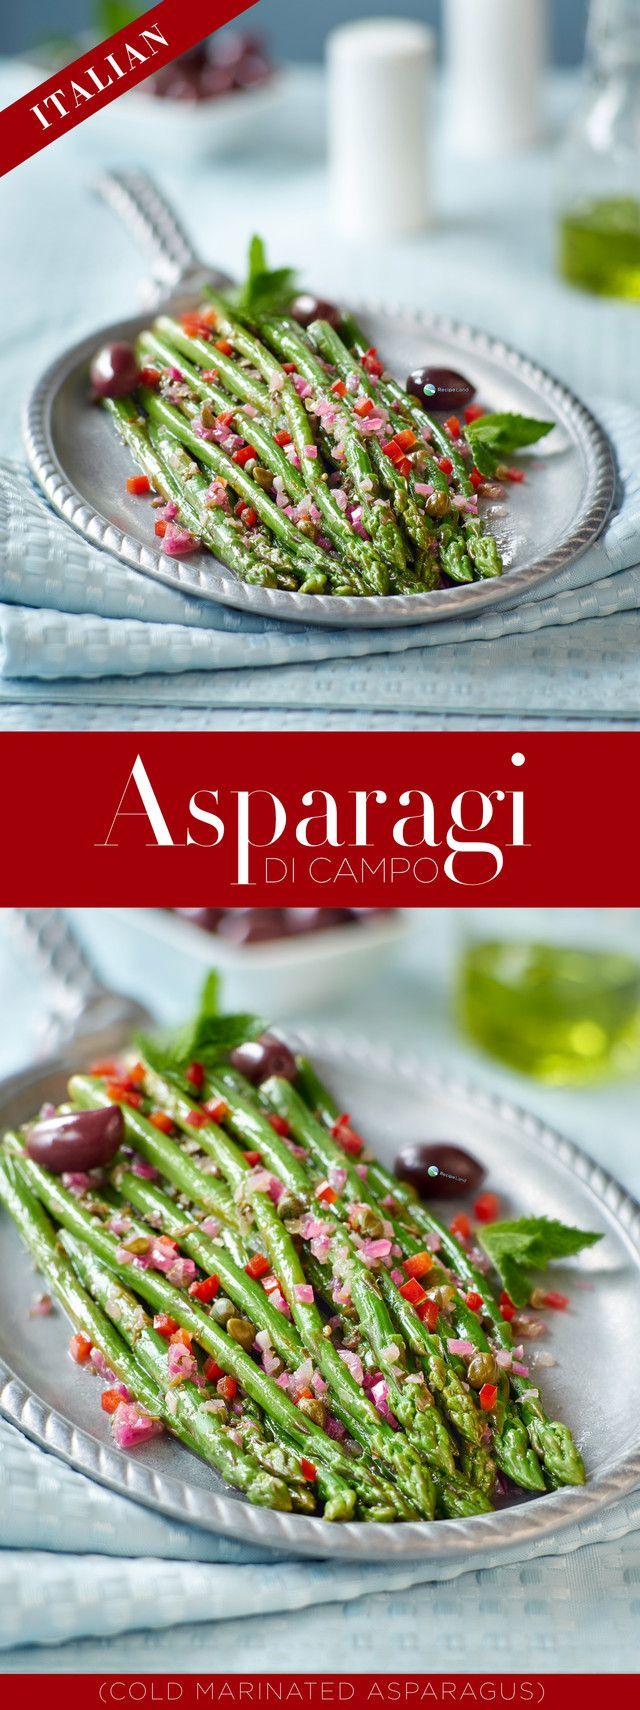 25+ Best Ideas About Marinated Asparagus On Pinterest  Chicken Madeira,  Med Grill And Broil A Steak